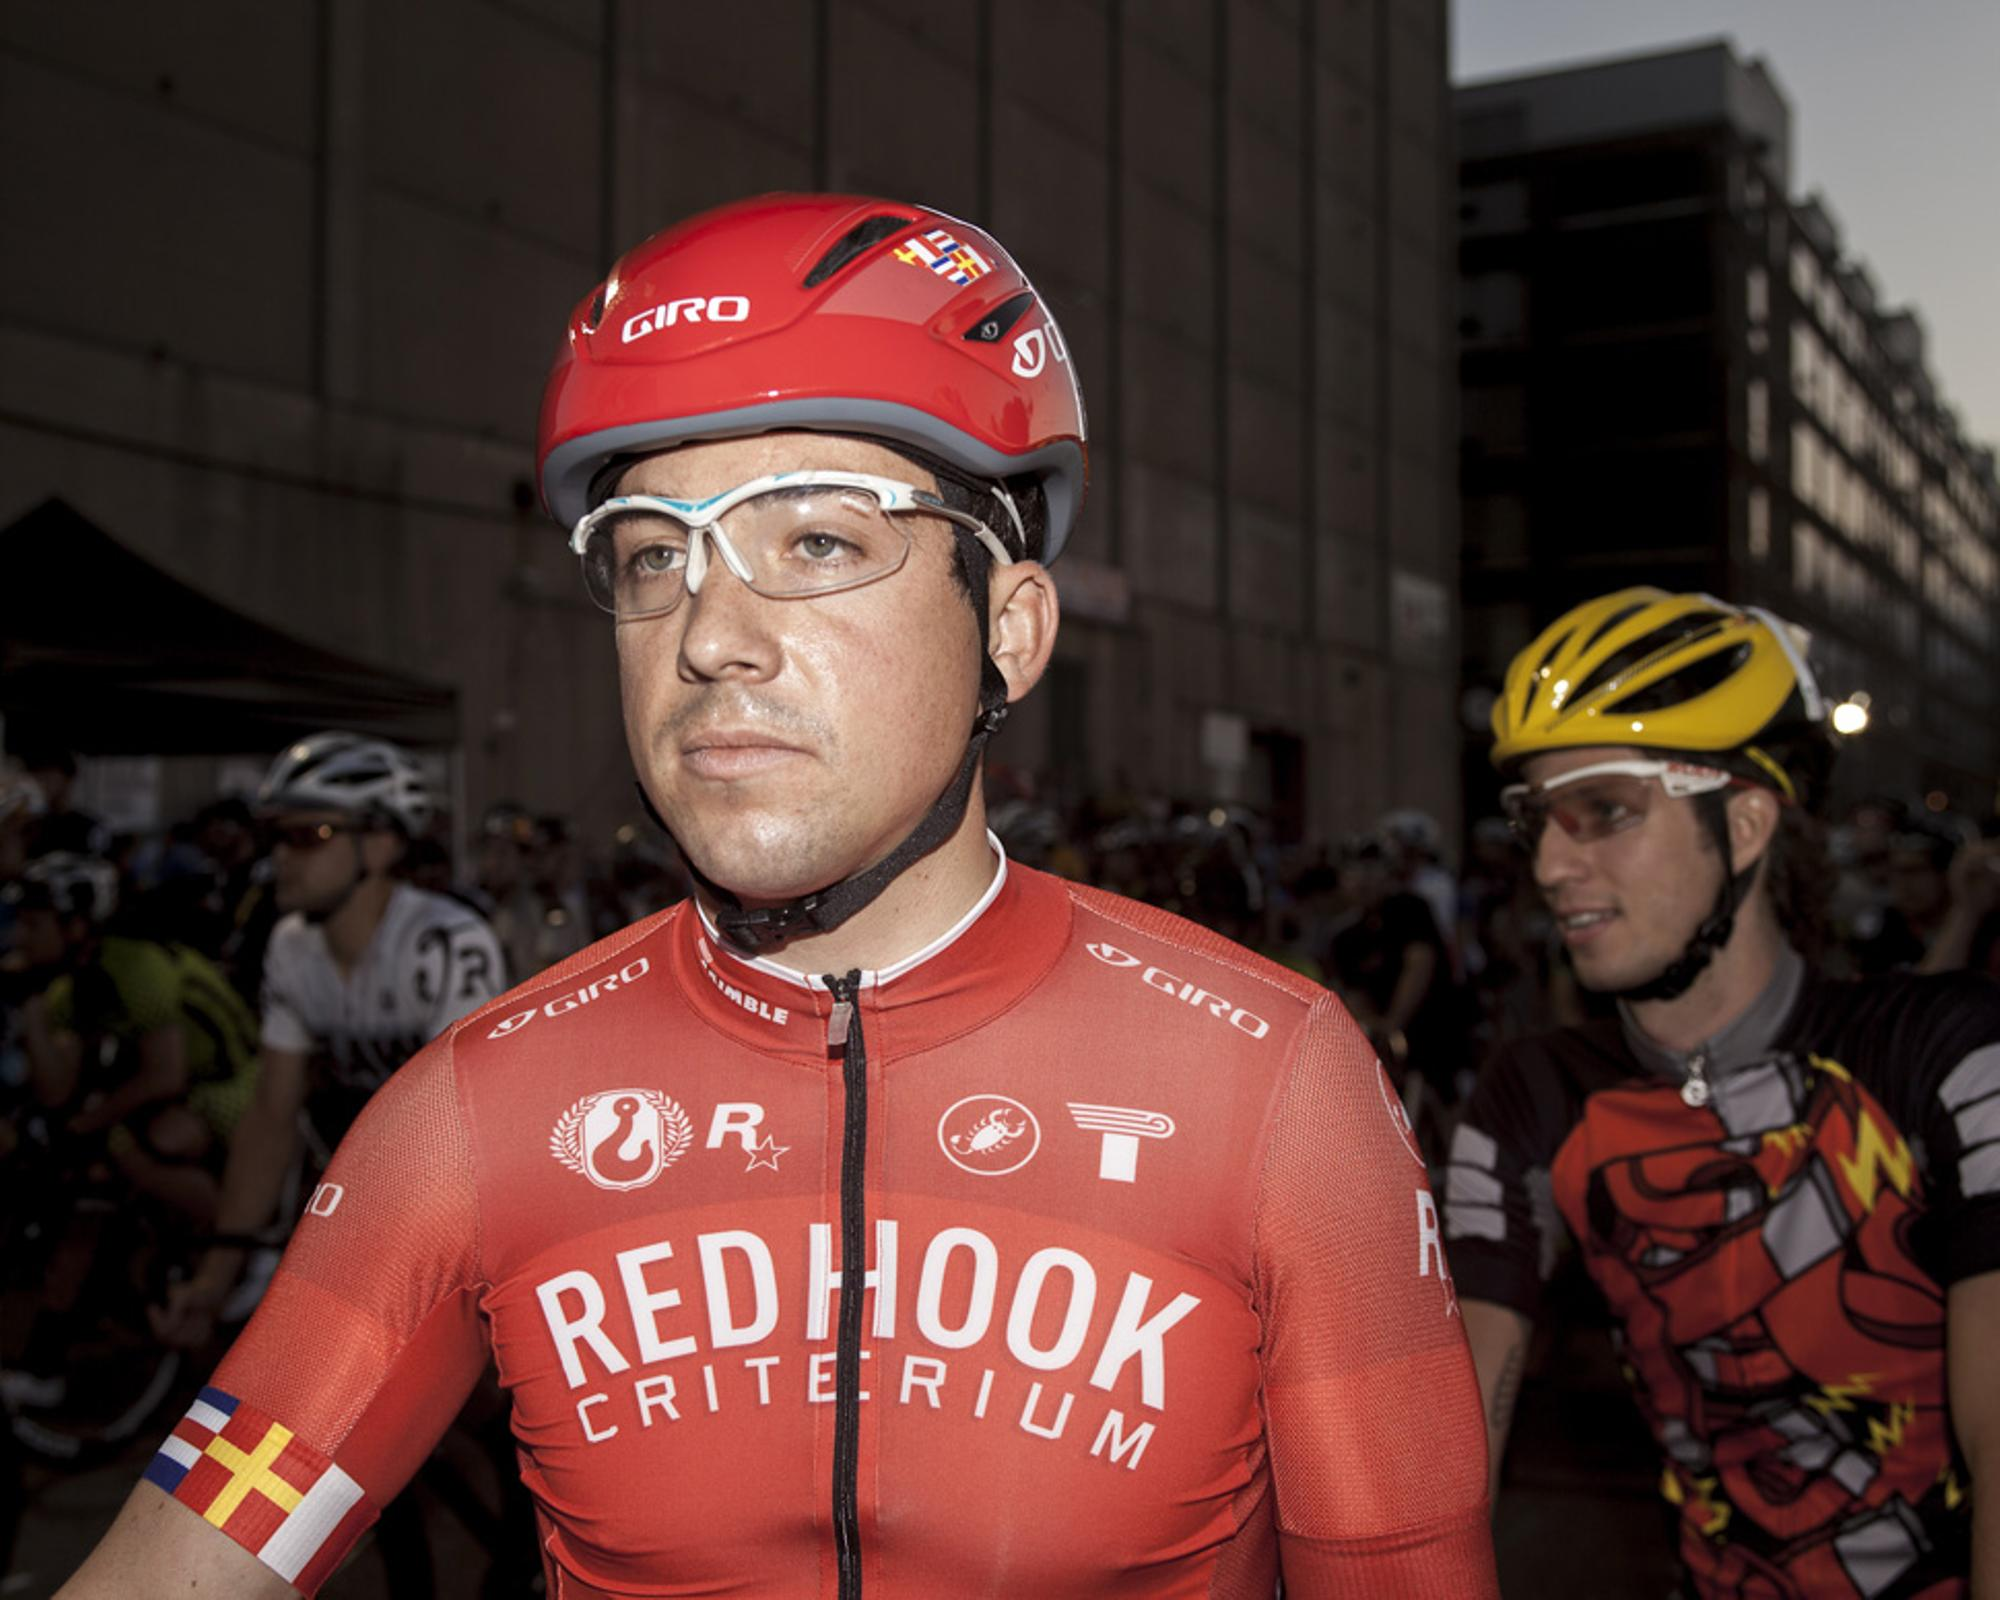 Emiliano Granado at the Red Hook Crit Navy Yard